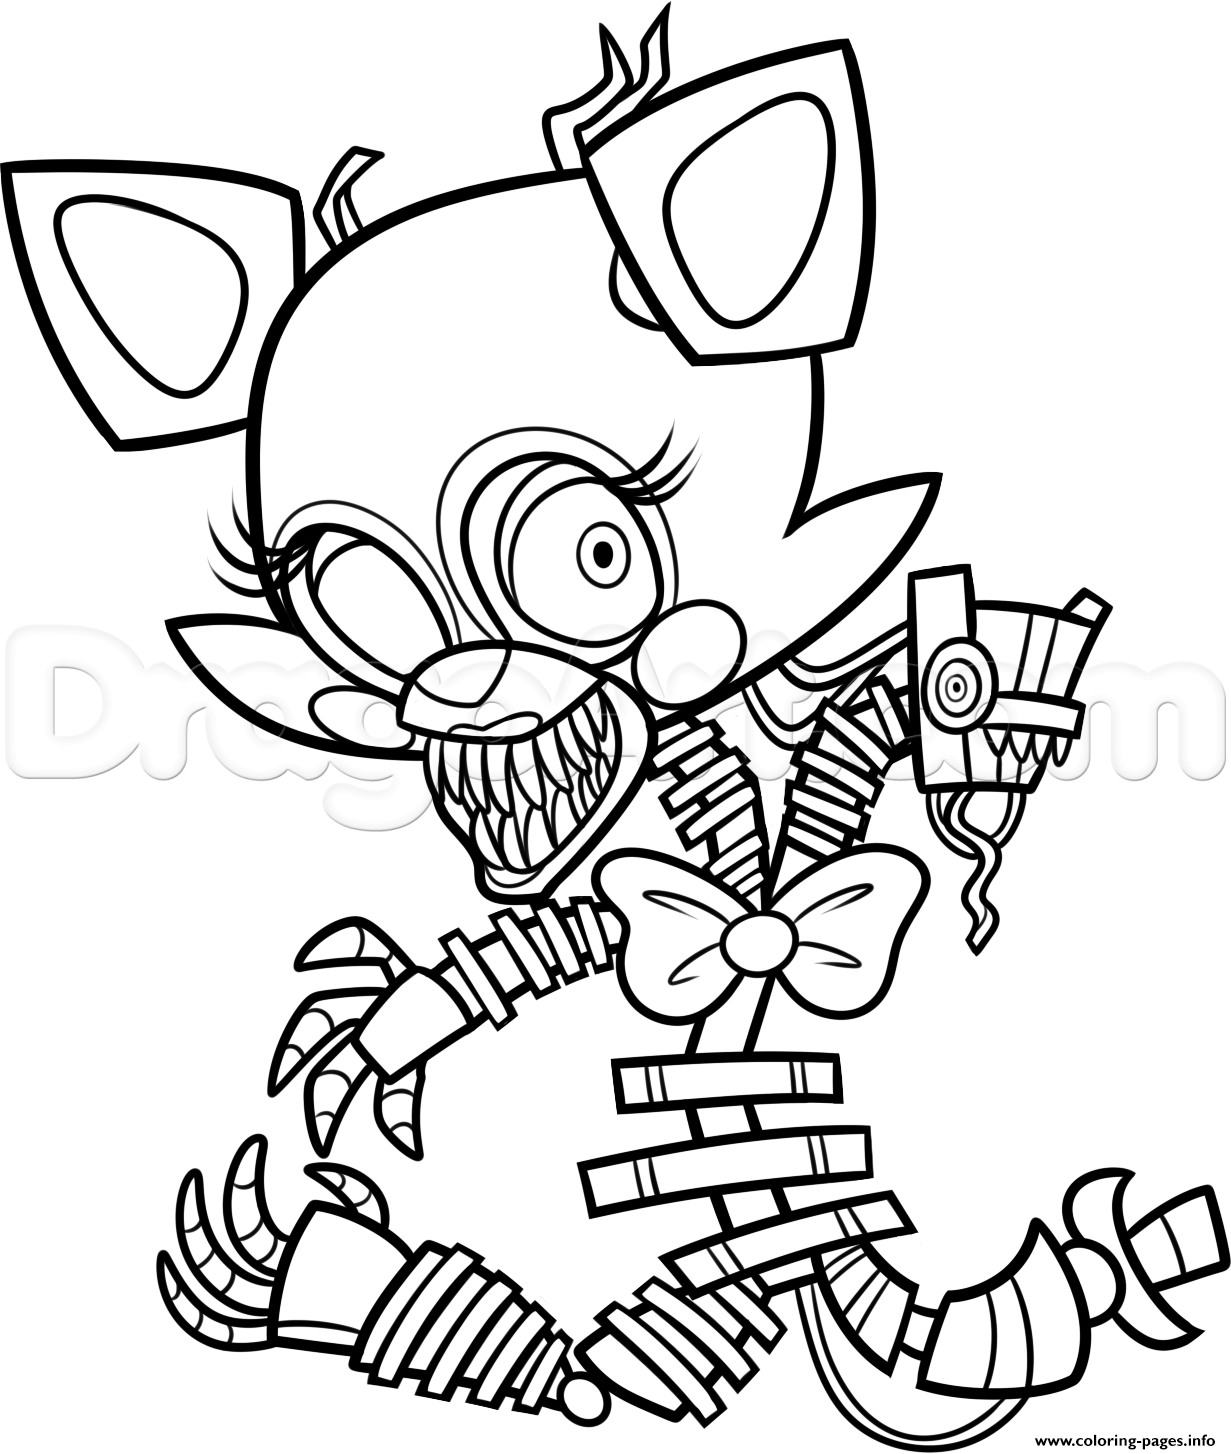 1231x1454 Fnaf Coloringagesicture Conceptrint Freddy S At Five Nights